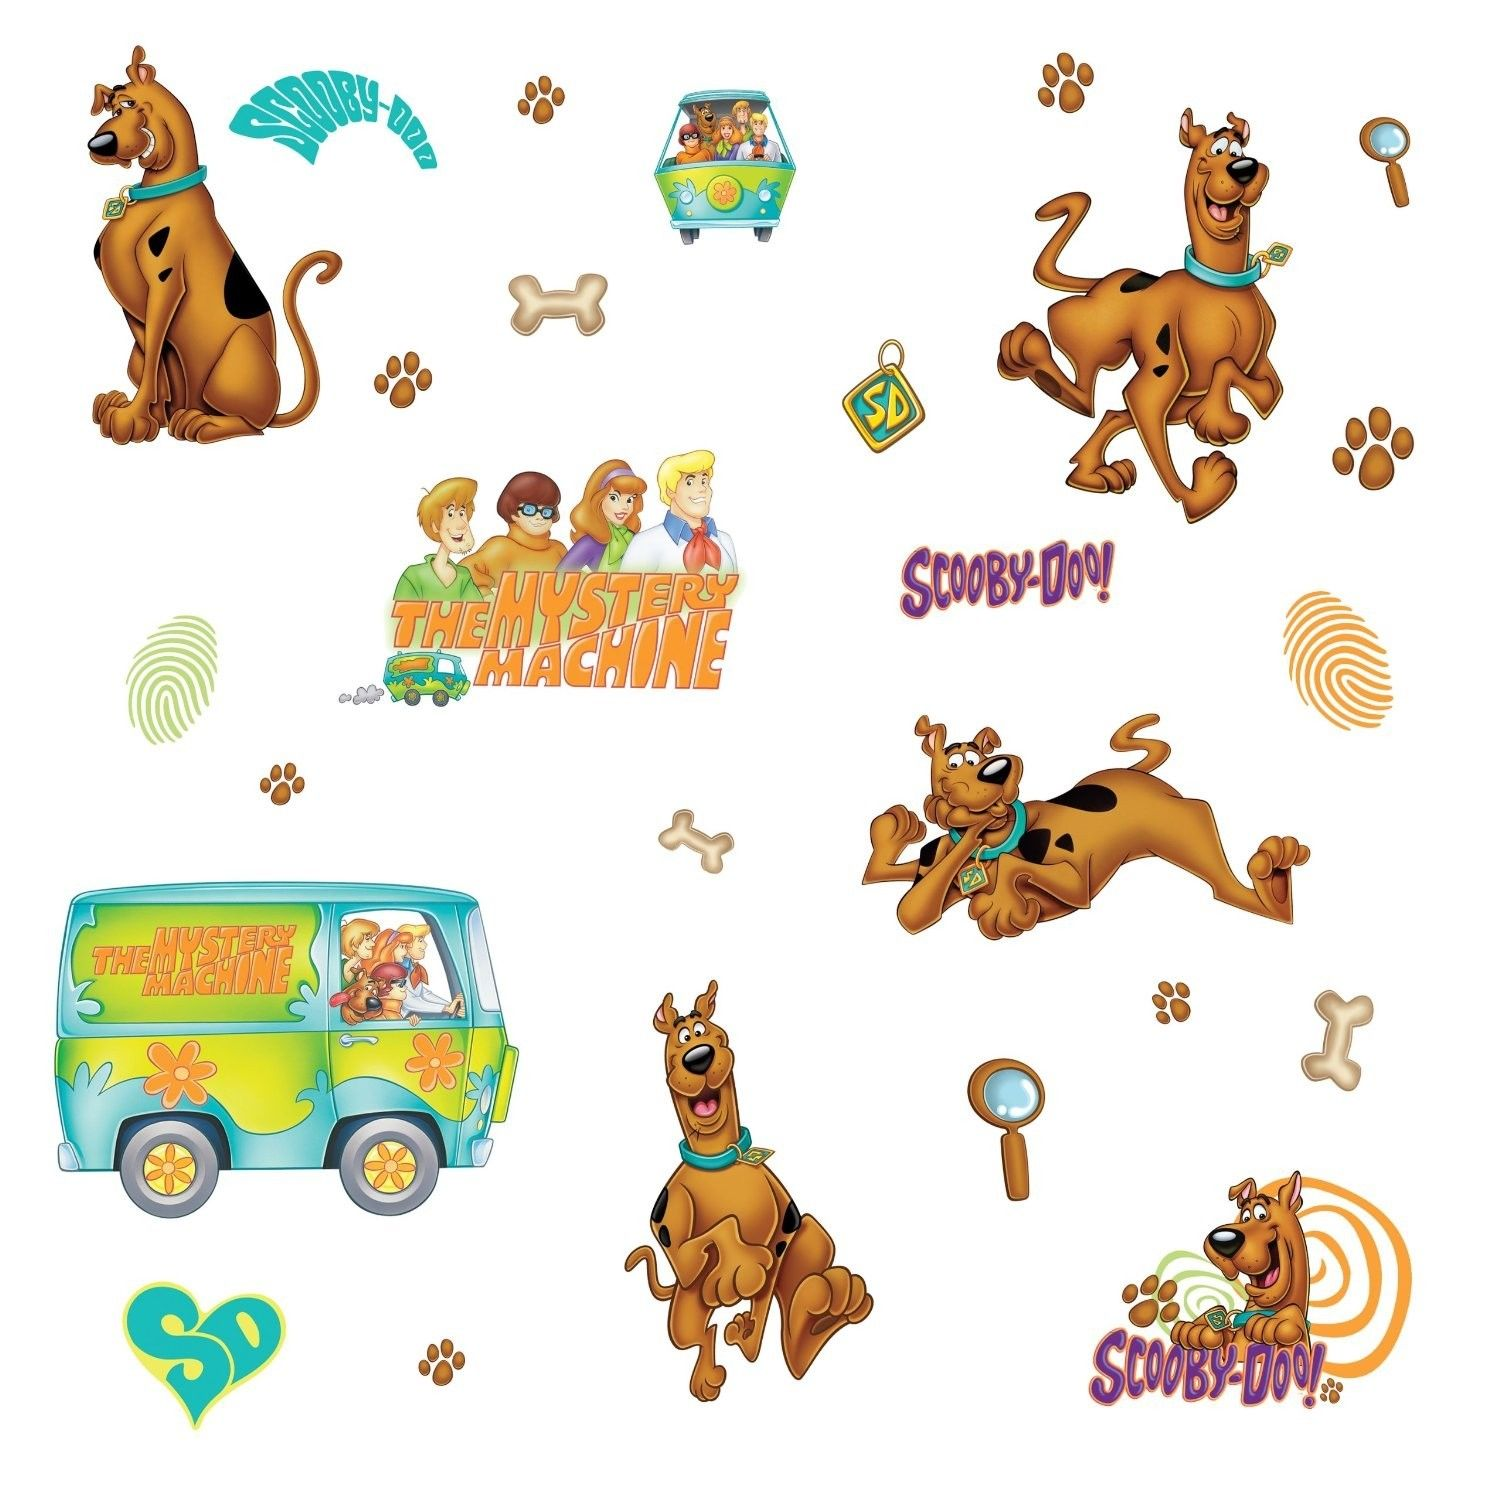 SCOOBY DOO 26 BiG Wall Stickers Room Decor Mystery Machine Decals Decorations